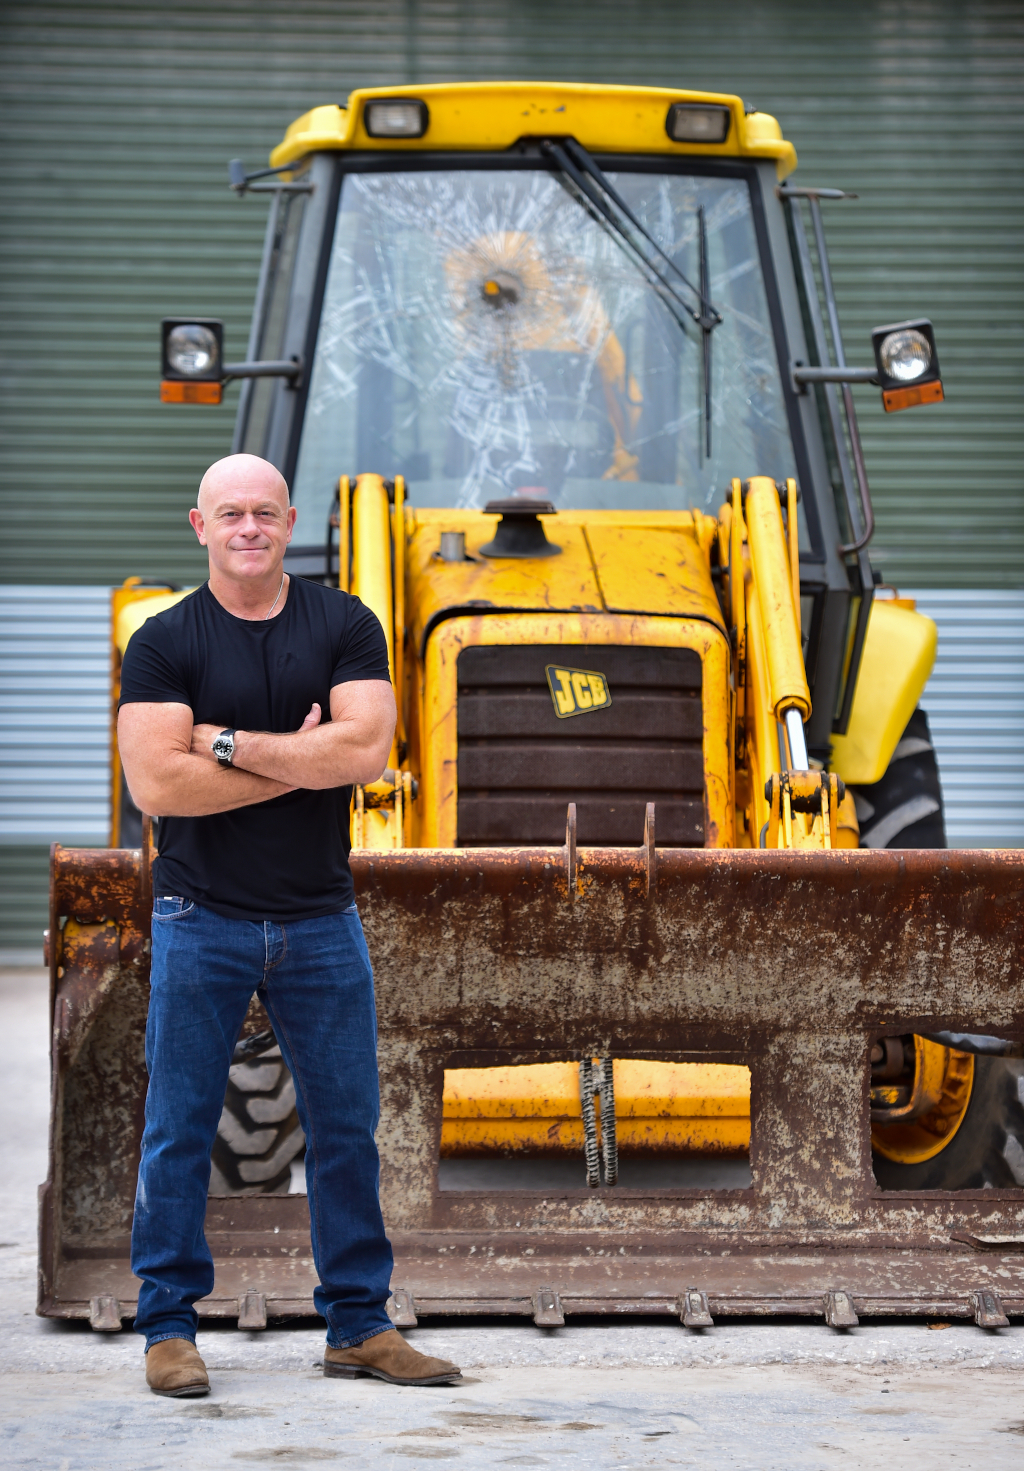 Ross Kemp pictured during his visit to JCB with the backhoe  loader used by the Millennium Dome raiders